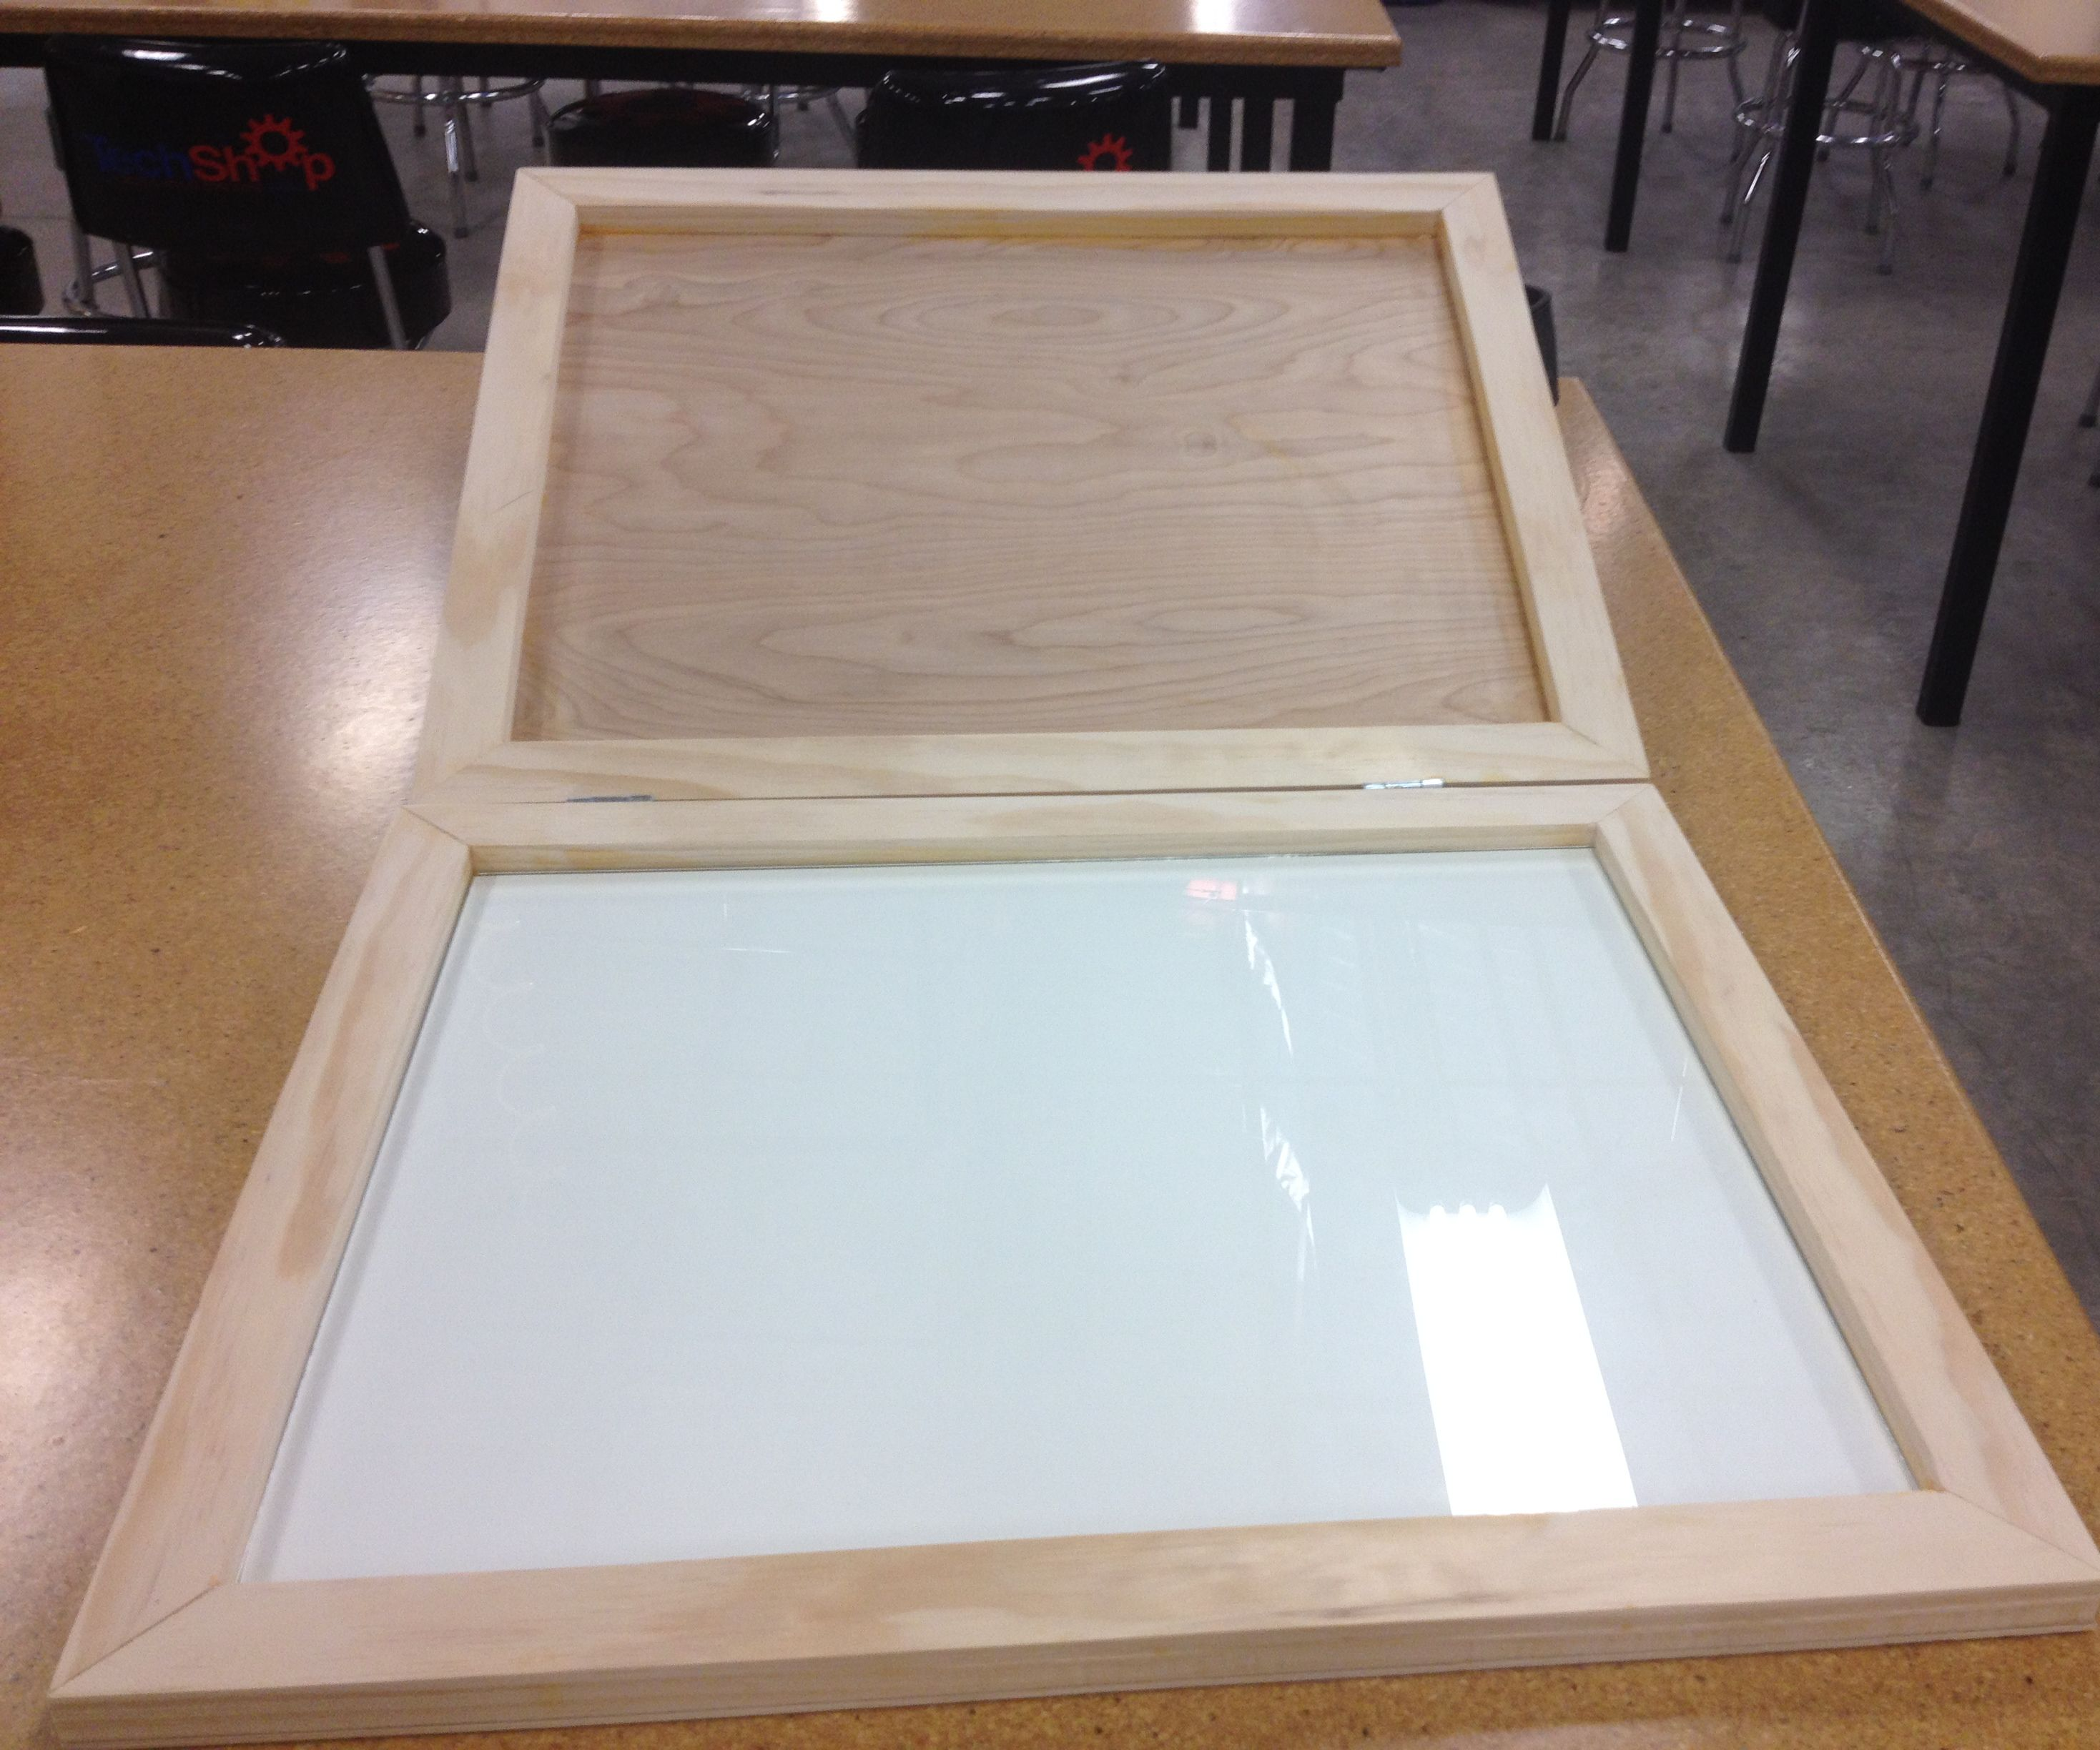 Portable Painting Palette I made at TechShop Chandler